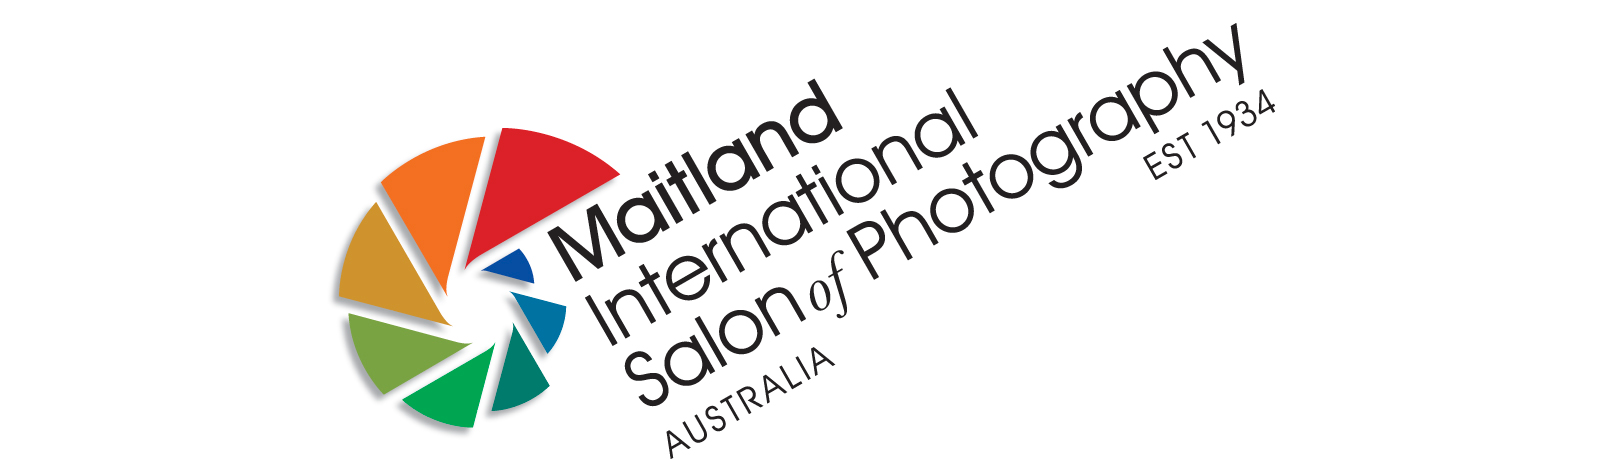 Maitland International Salon of Photography